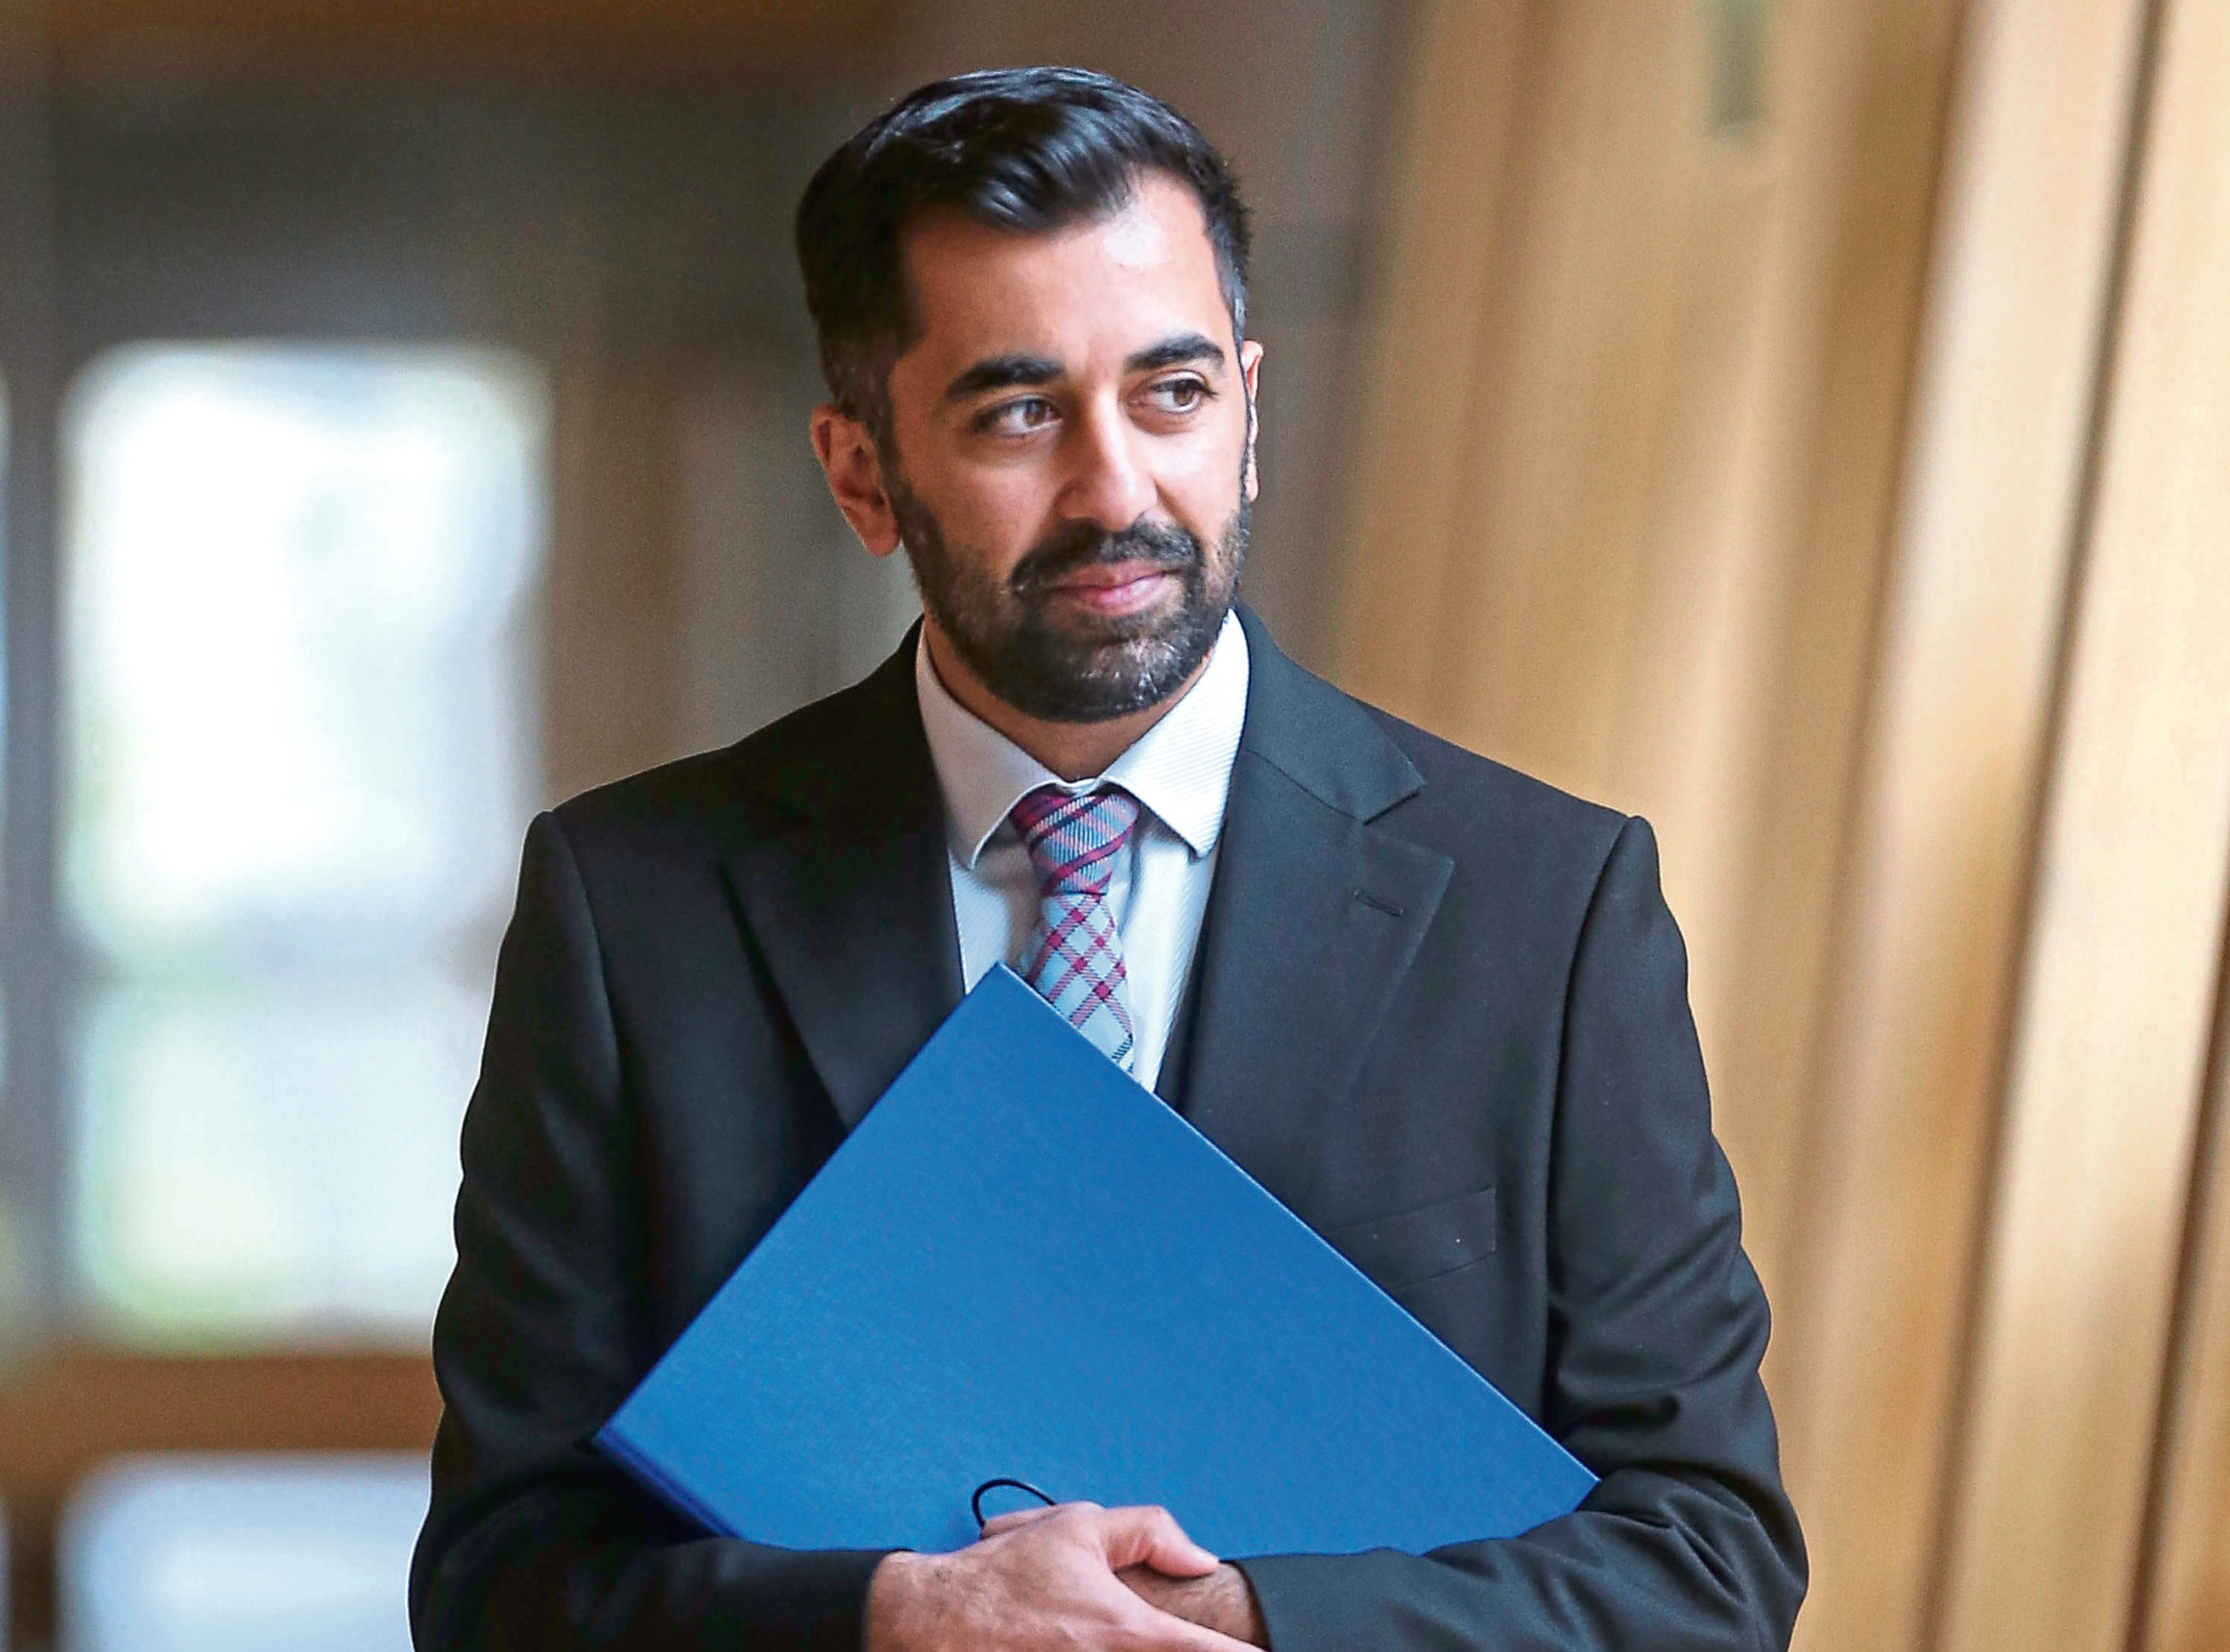 Humza Yousaf warns of police delay after Brexit – The Sunday Post